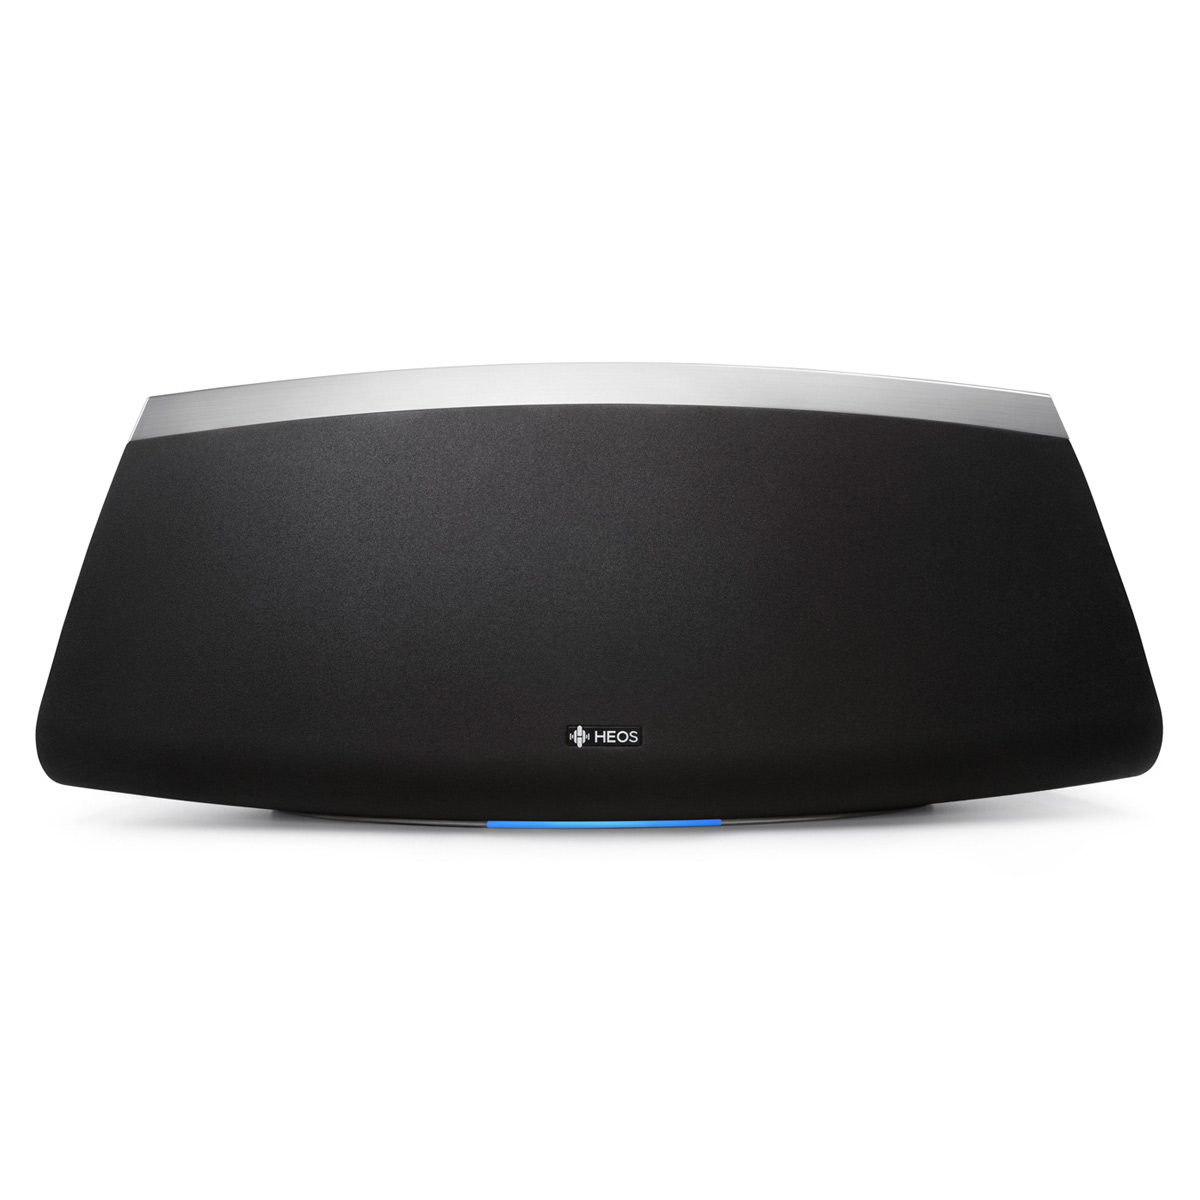 Denon-HEOS-7-Wireless-Streaming-Speaker-Series-2 thumbnail 6